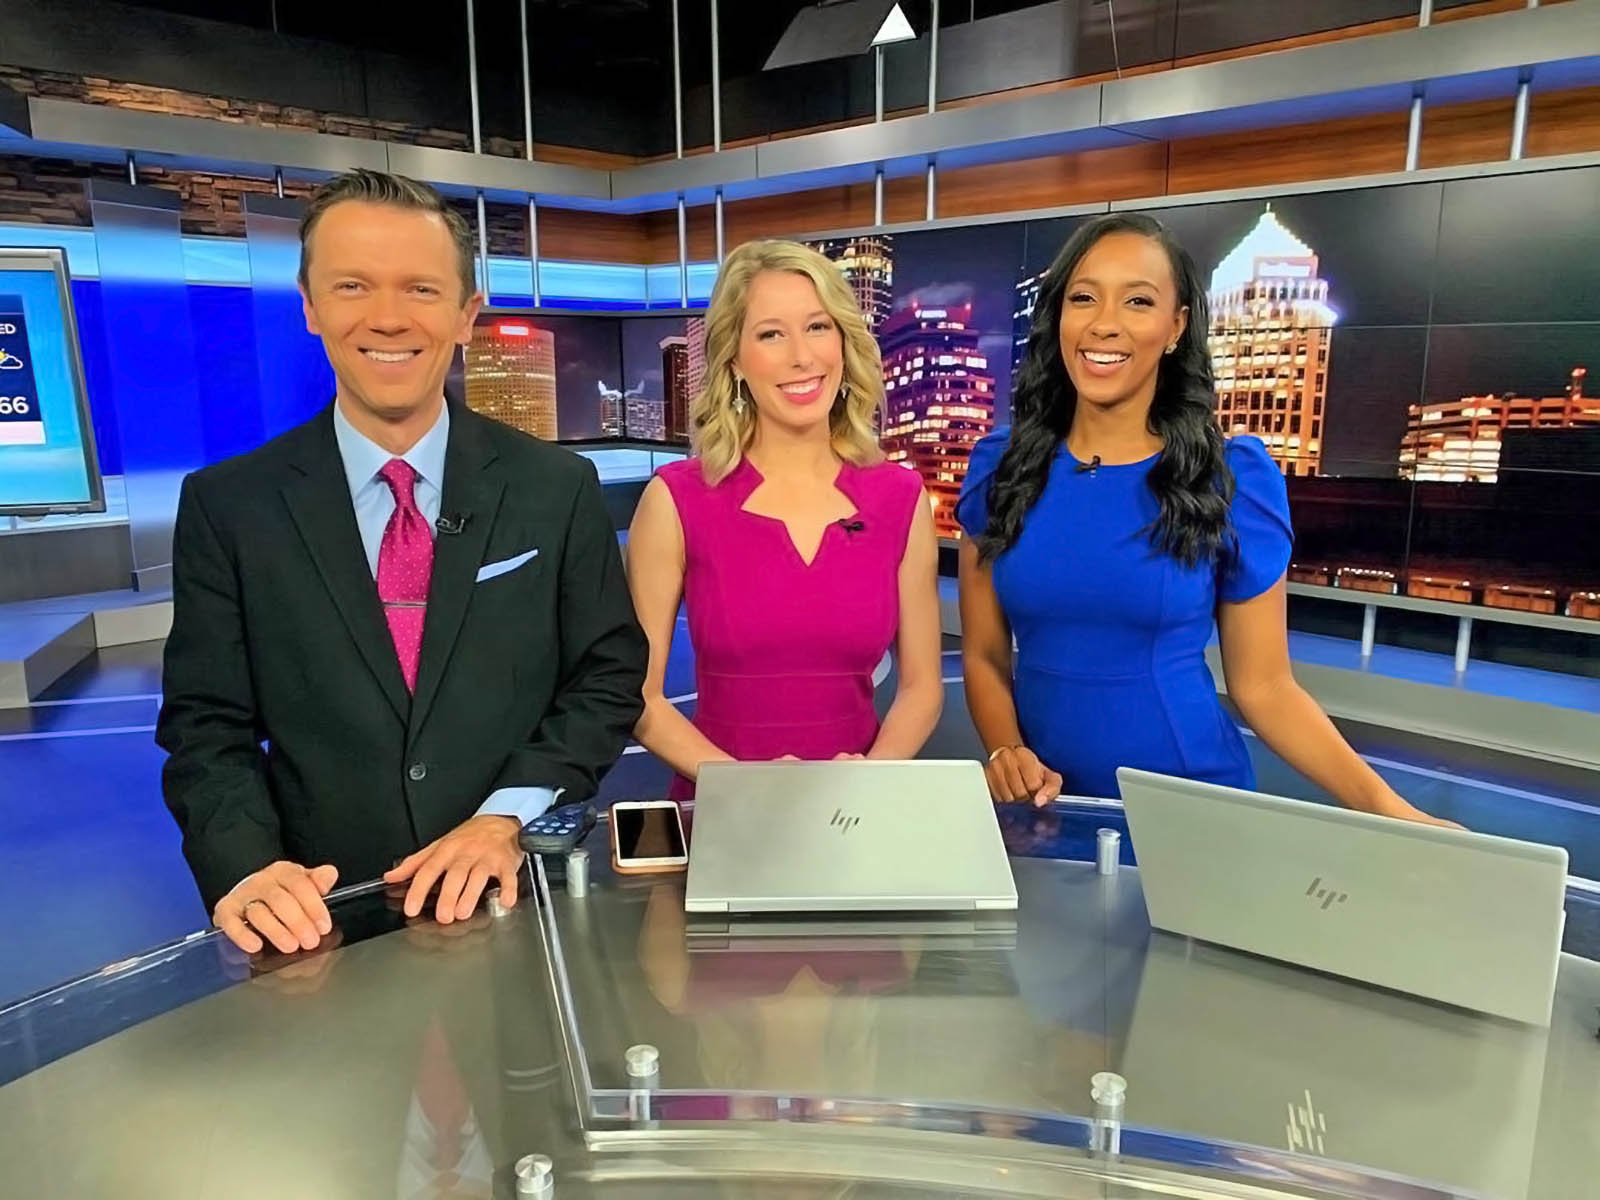 Greg Dee, Sarah Phinney, and Jasmine Styles at ABC Action News Live Studio